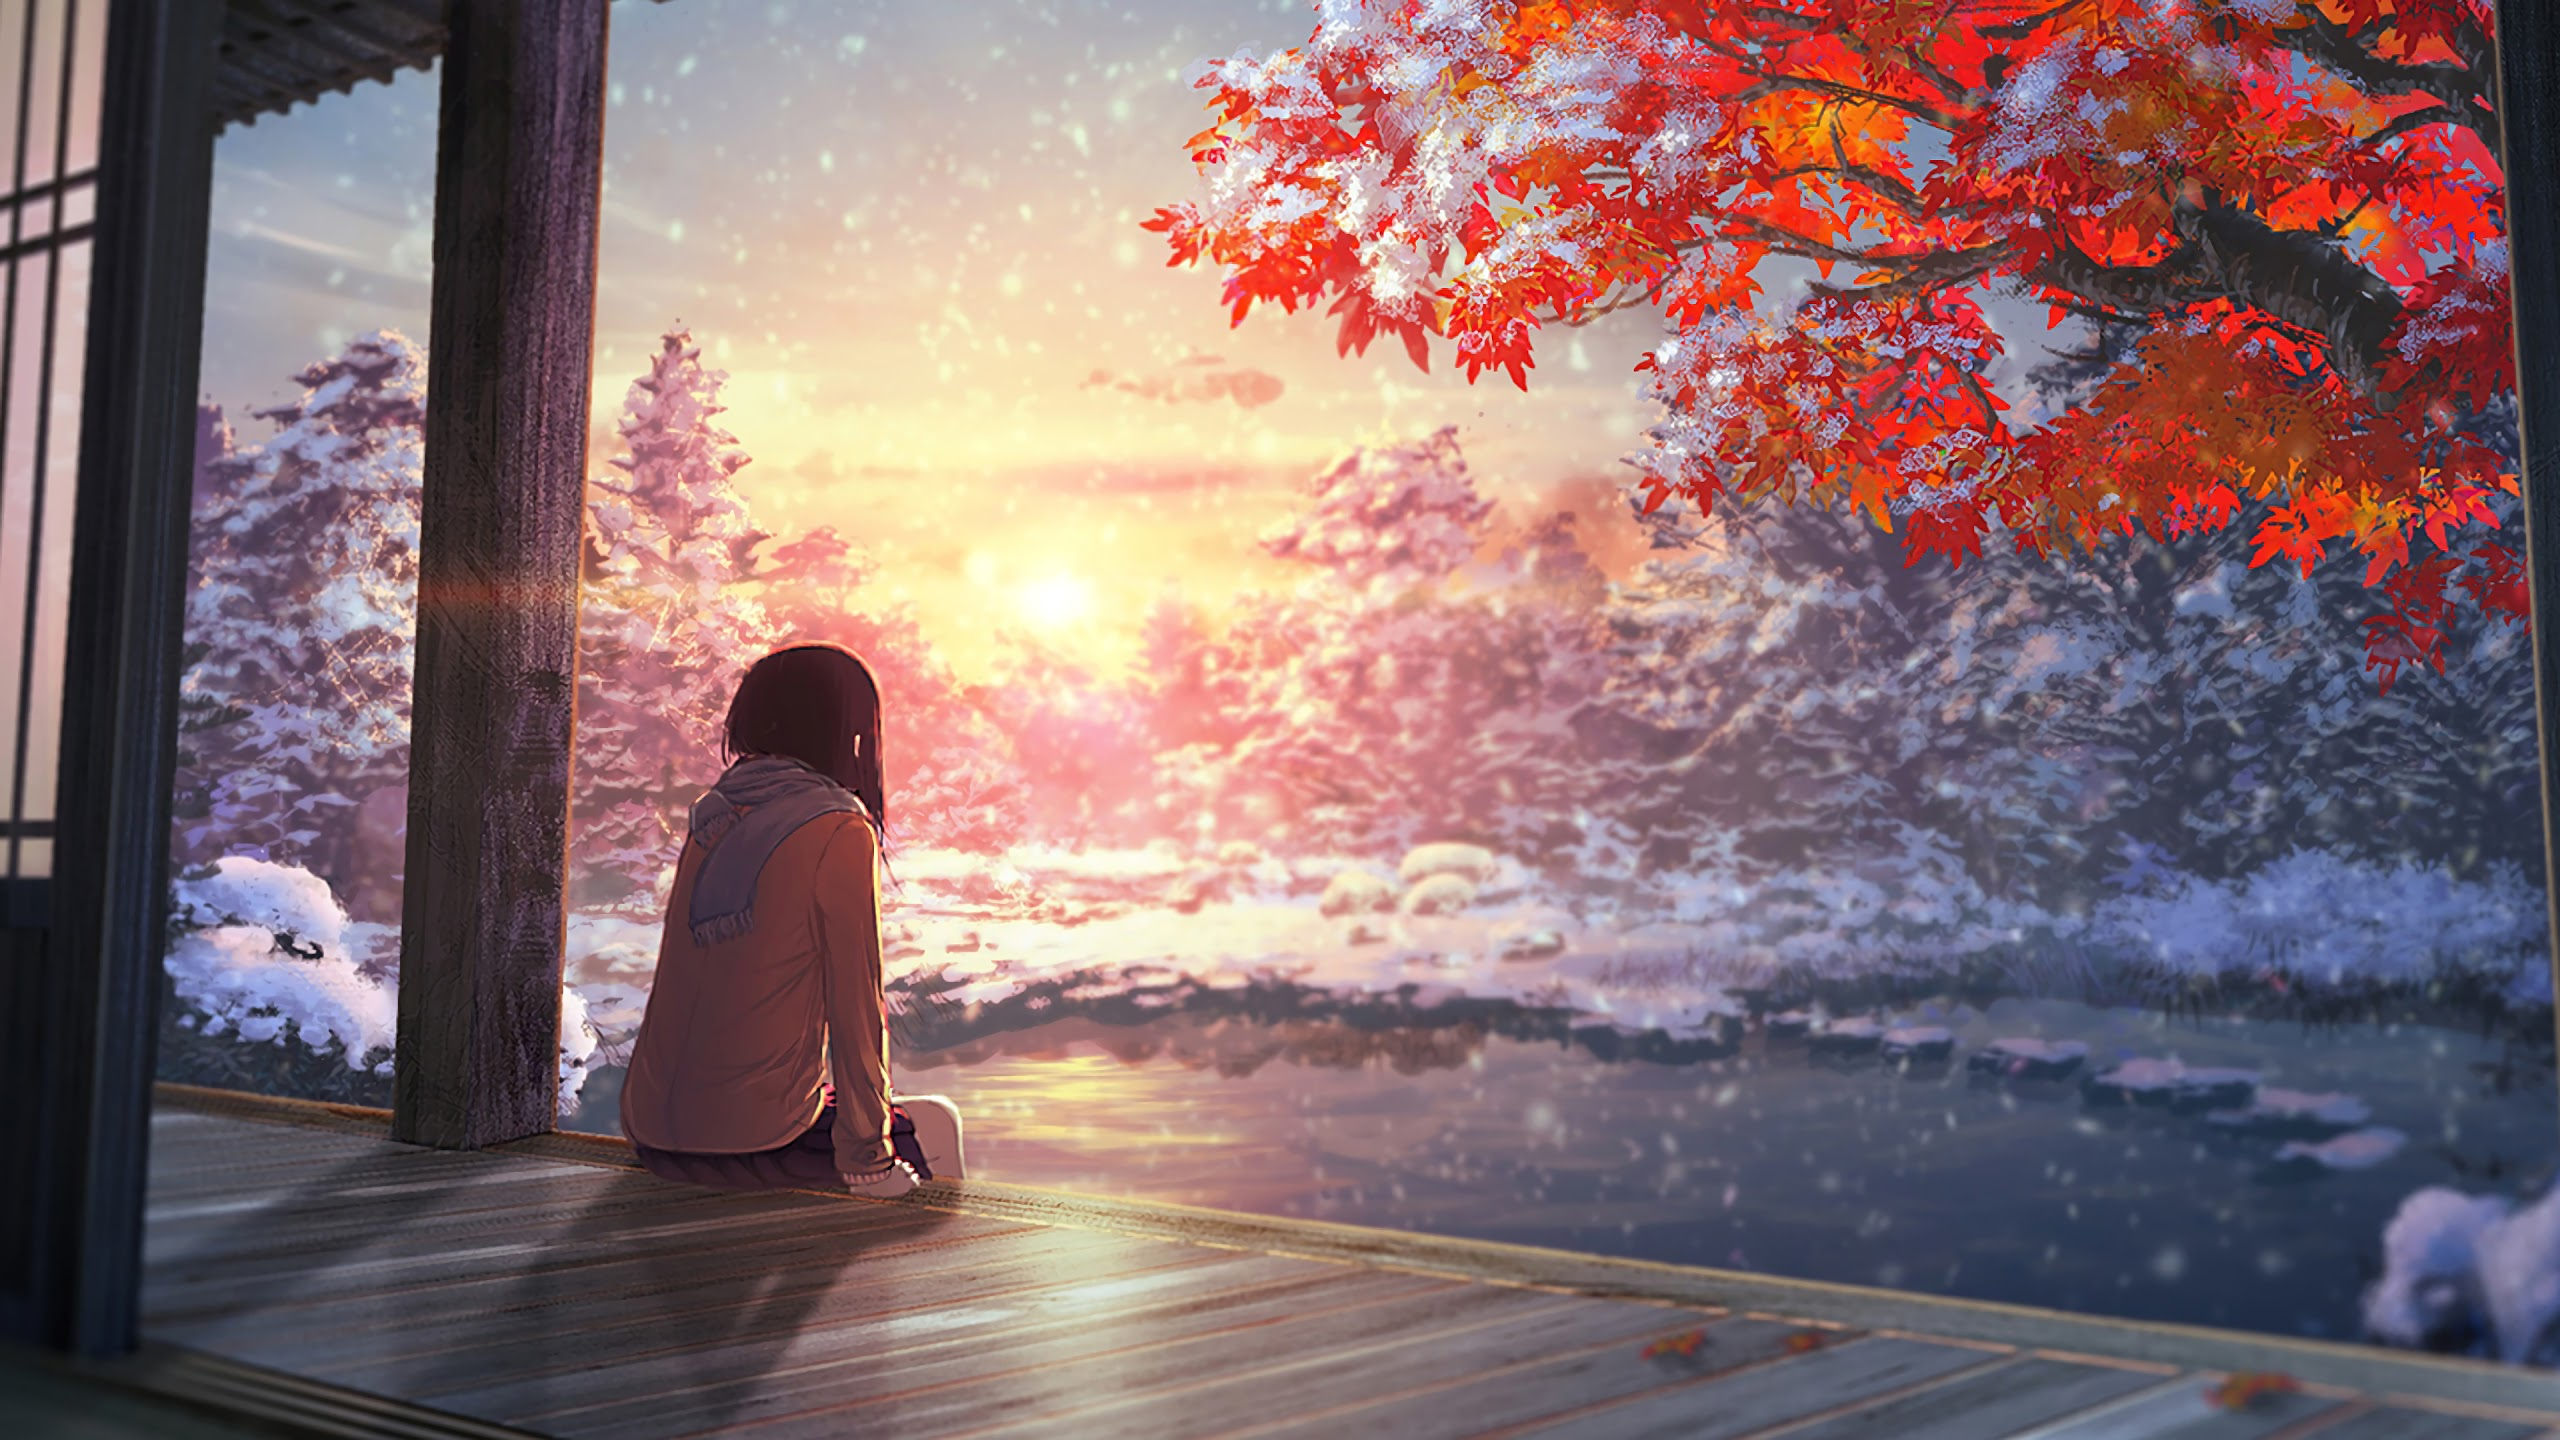 Anime Scenery Autumn Sunset 4k 3840x2160 Anime Scenery 3135216 Hd Wallpaper Backgrounds Download